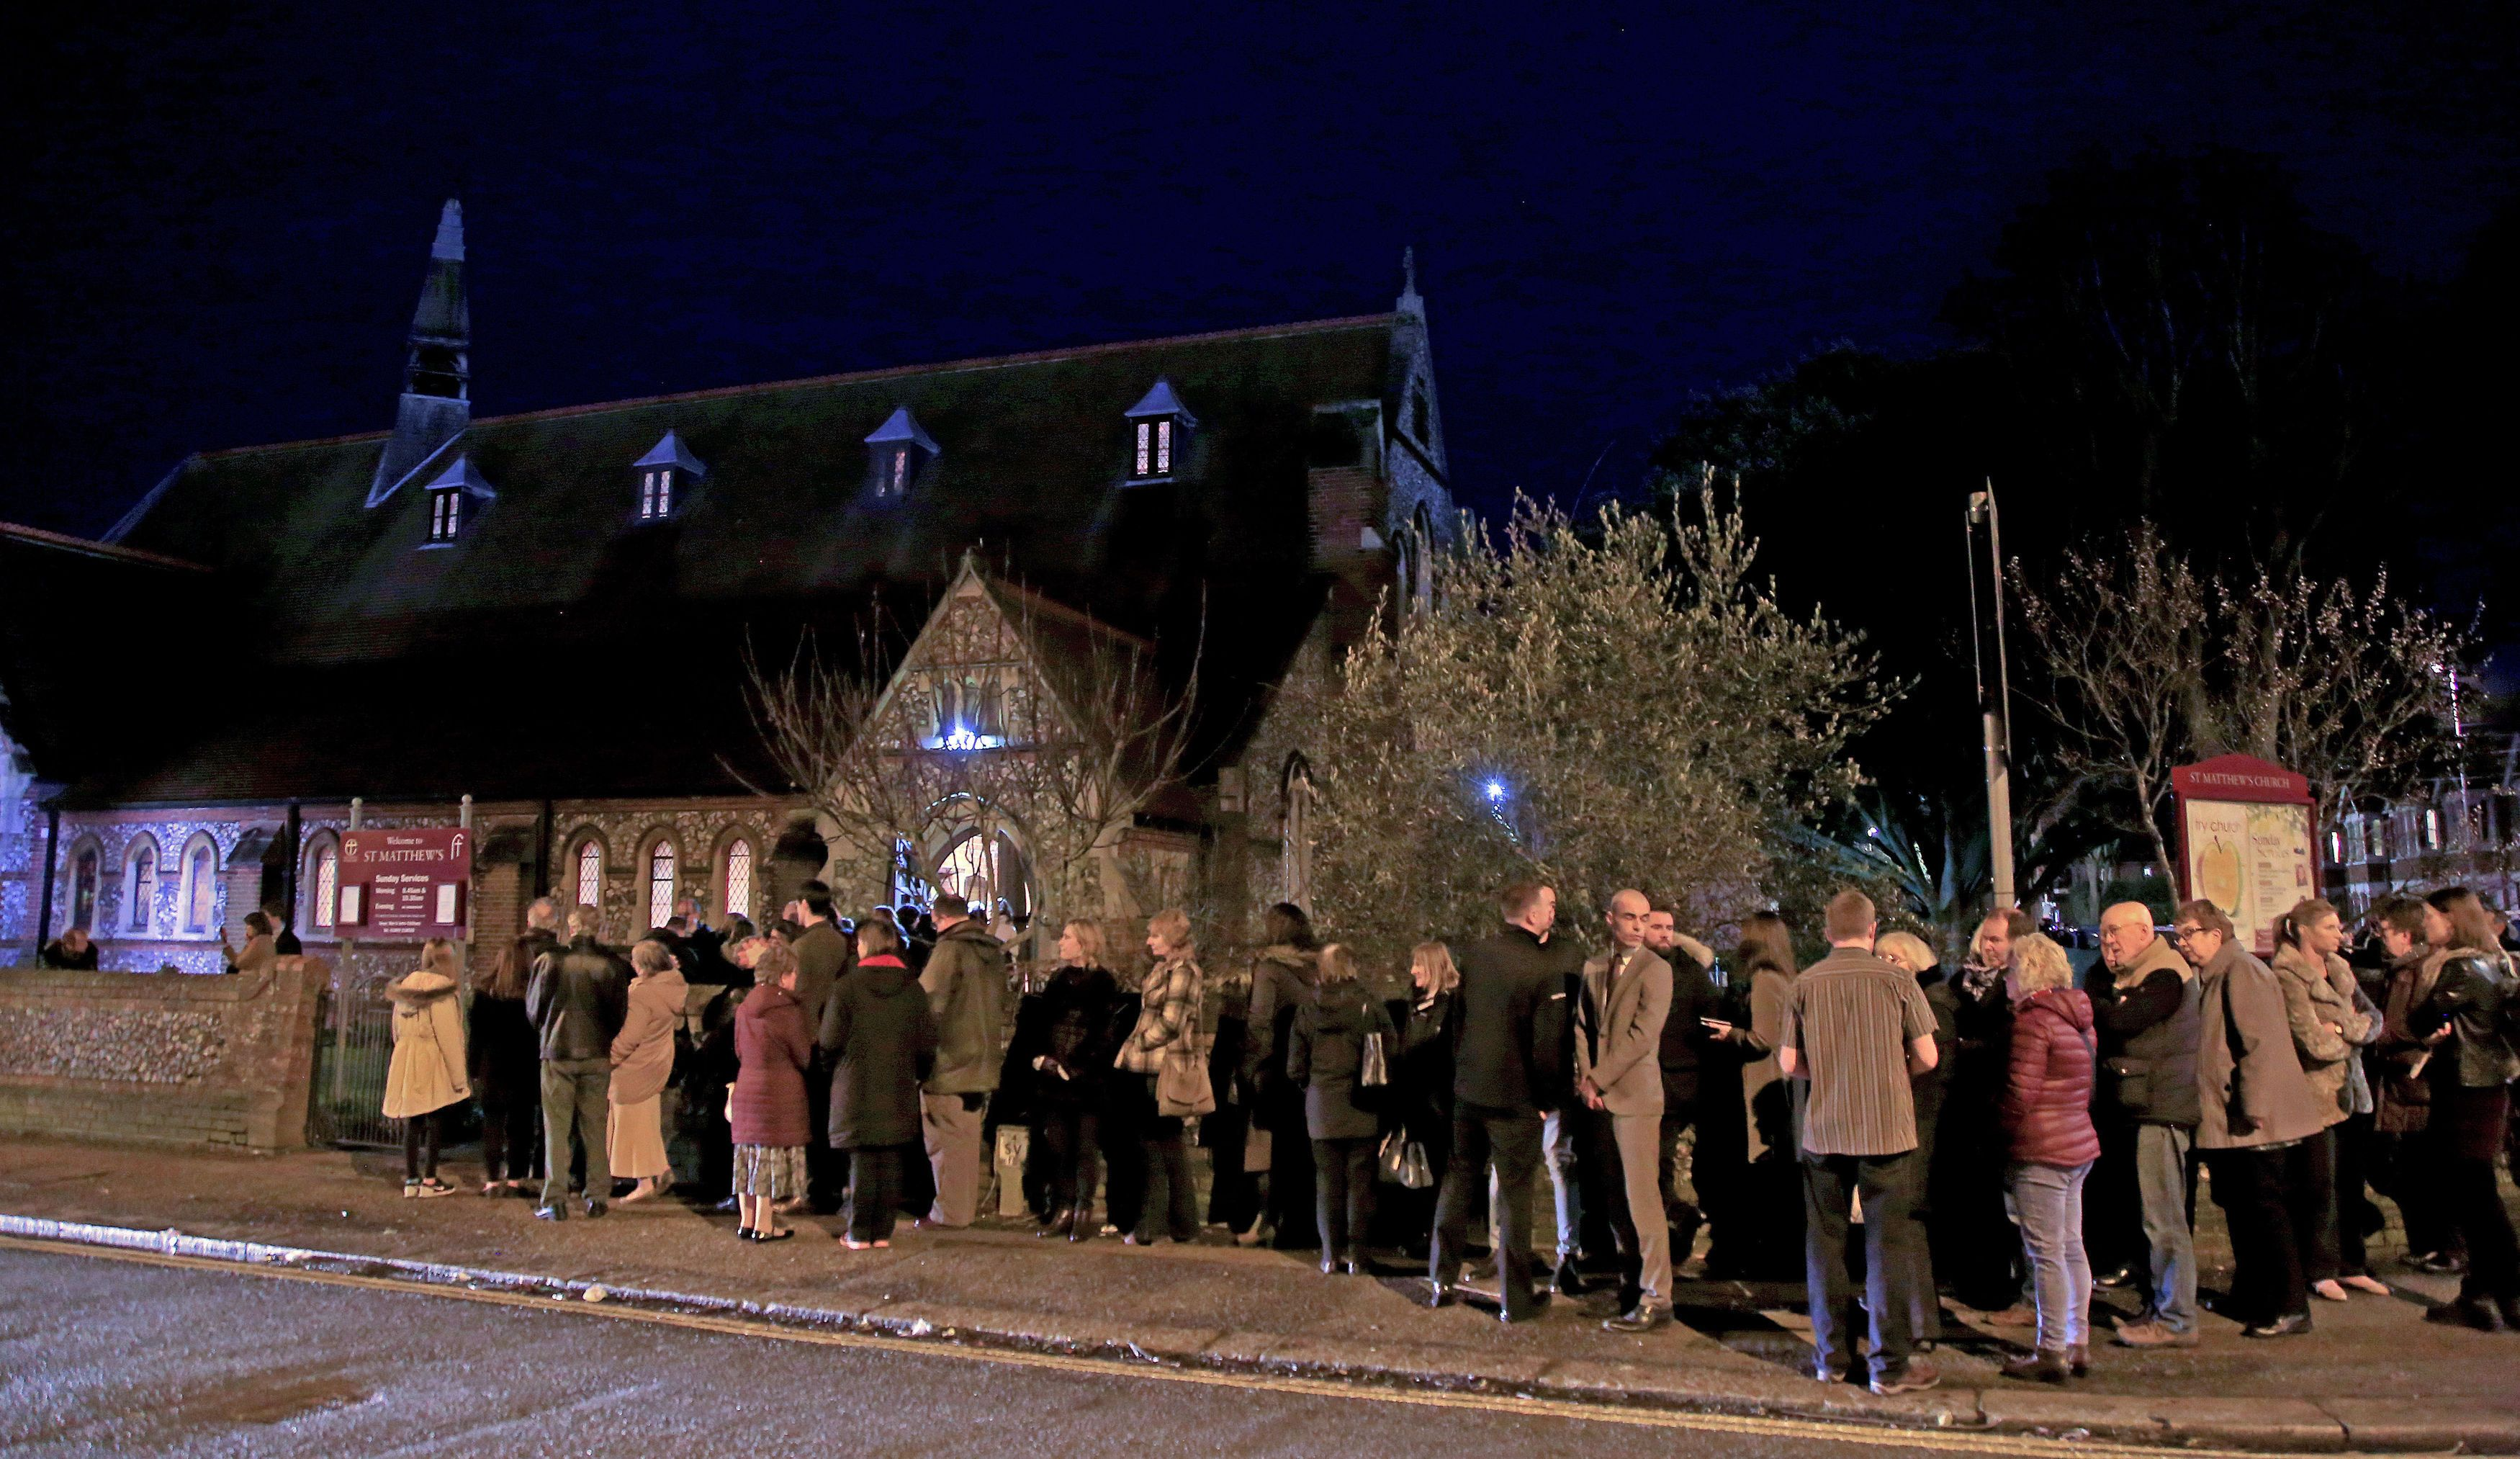 <strong>Mourners gather at St. Matthews Church in Worthing, West Sussex, for a memorial service for Stuart and Jason Hill, who were killed alongside Becky Dobson in a helicopter crash in the Grand Canyon.</strong>